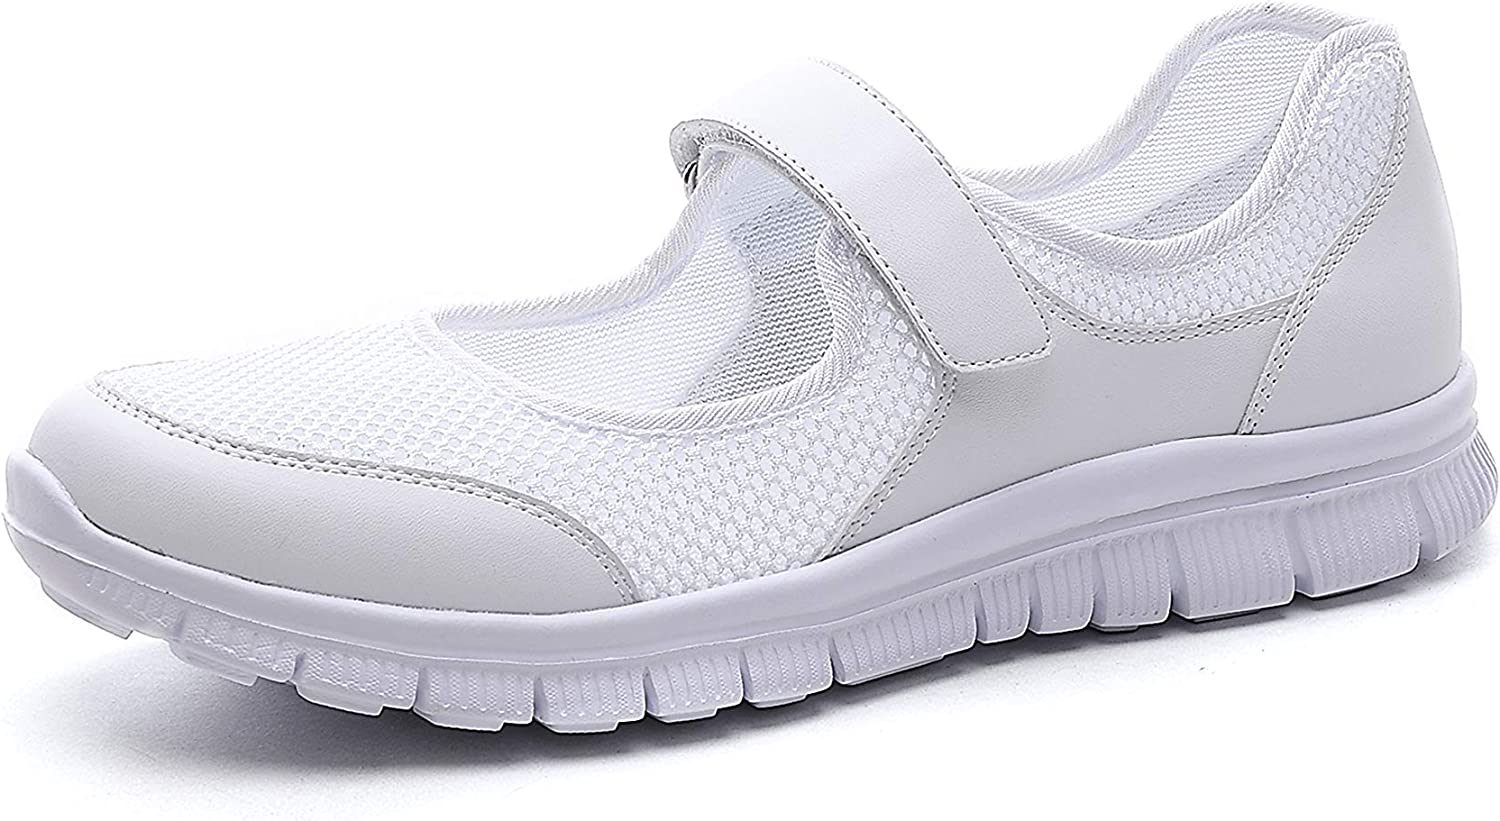 1 Wei/ß Hishoes Womens Mesh Walking Shoes Ladies Shock Absorbing Sandals Wedge Lightweight Mary Janes Trainers Fitness Sports 7 UK